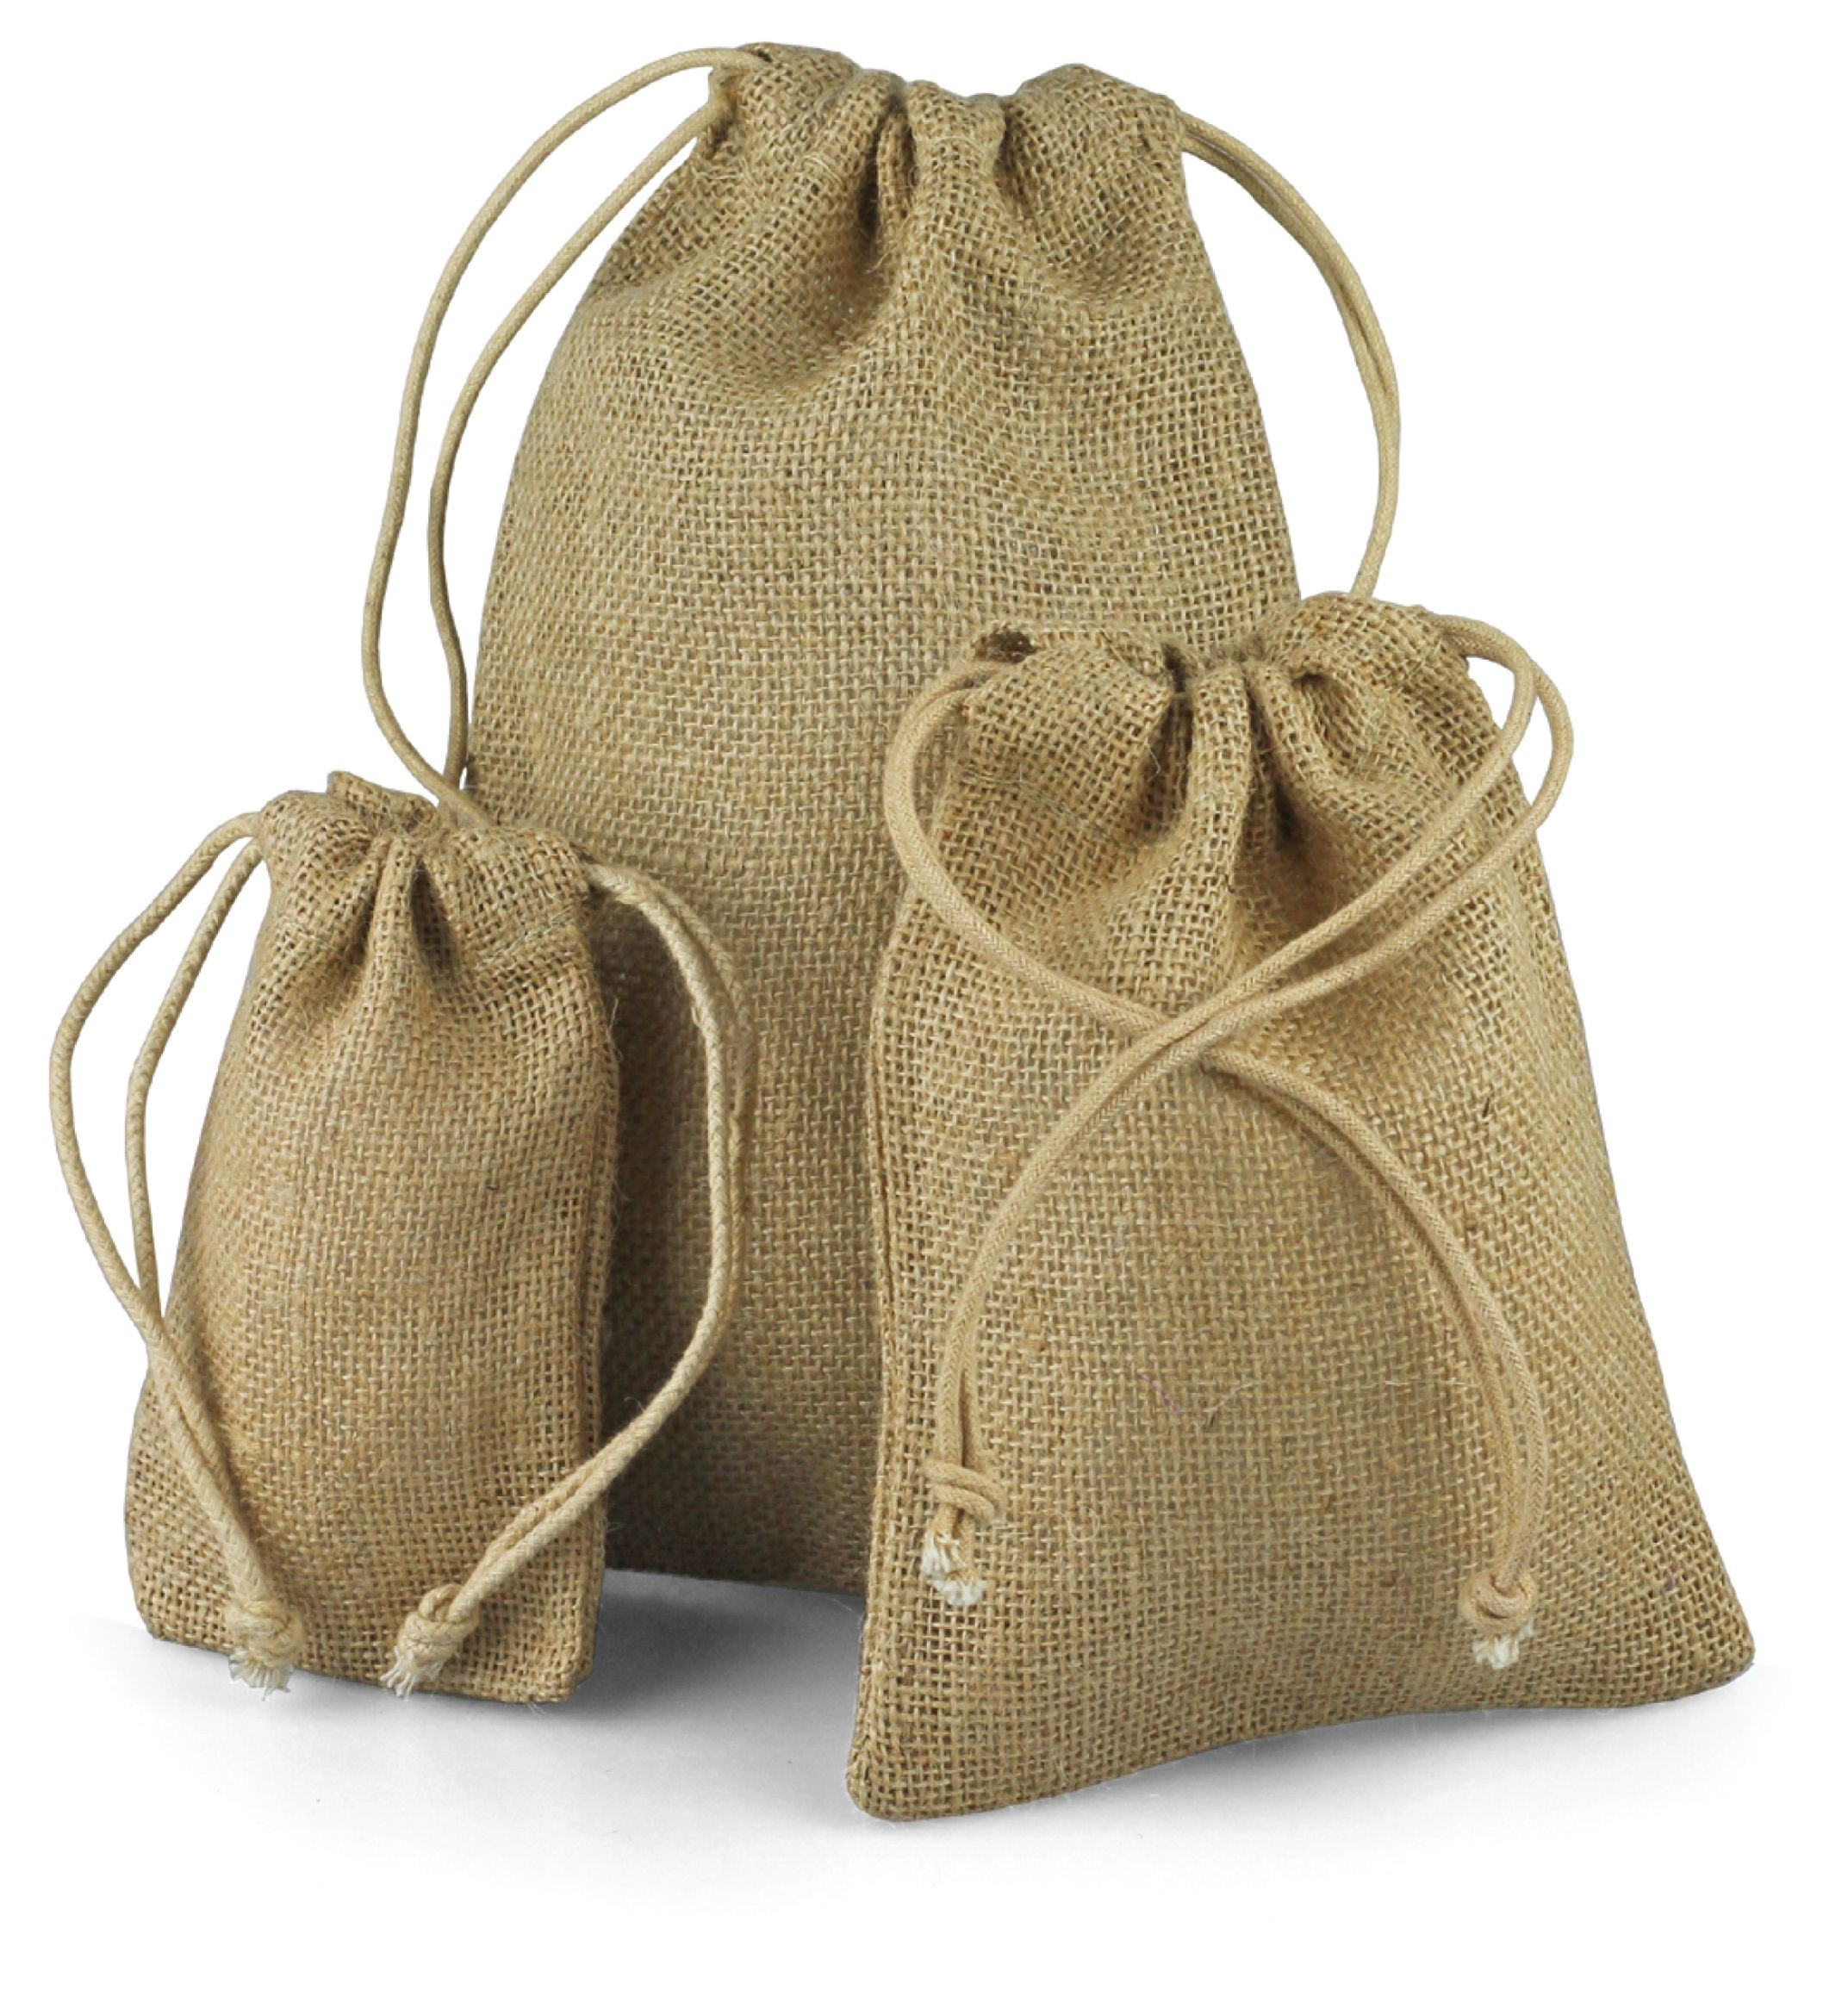 Wholesale Burlap Bags & Burlap Sacks For Sale. very inexpensive ...